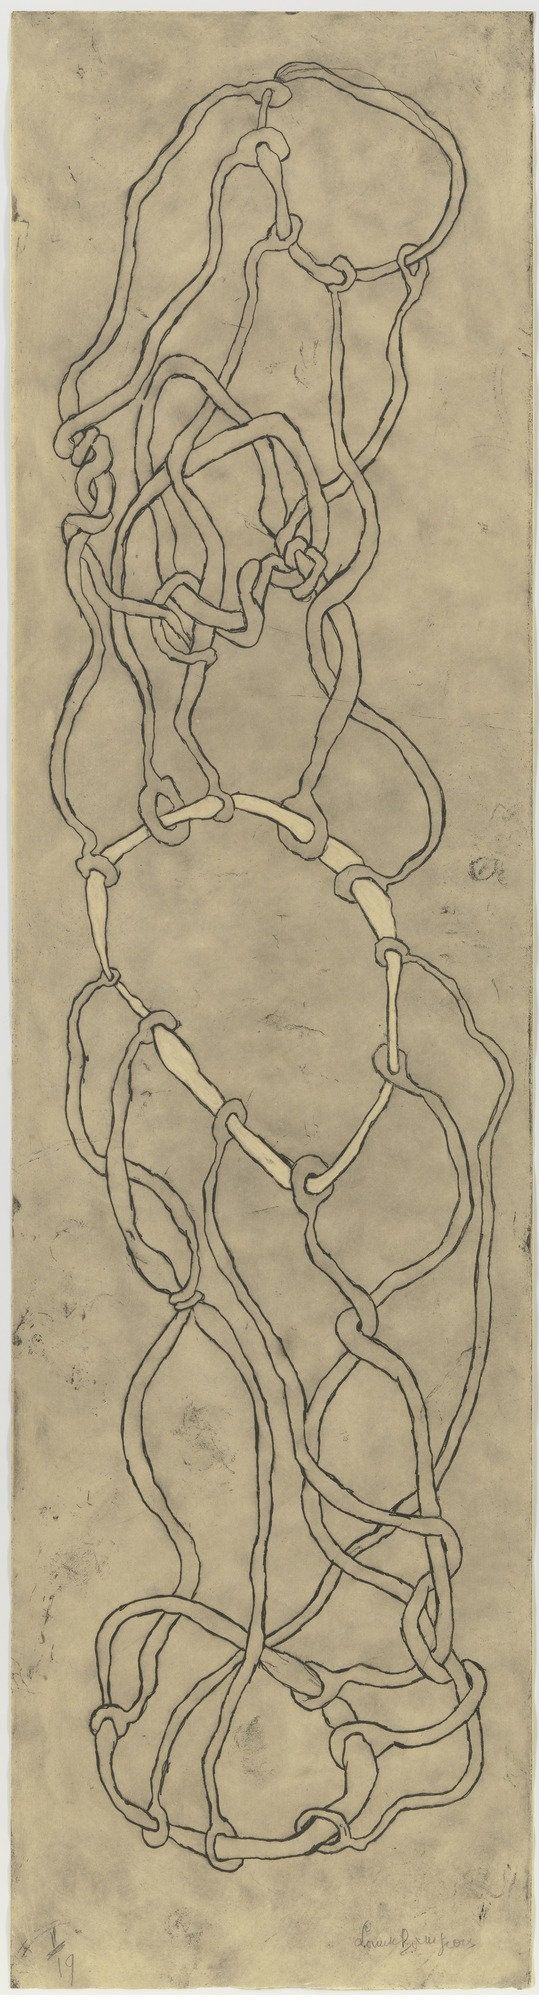 Louise Bourgeois. Knots. 2006